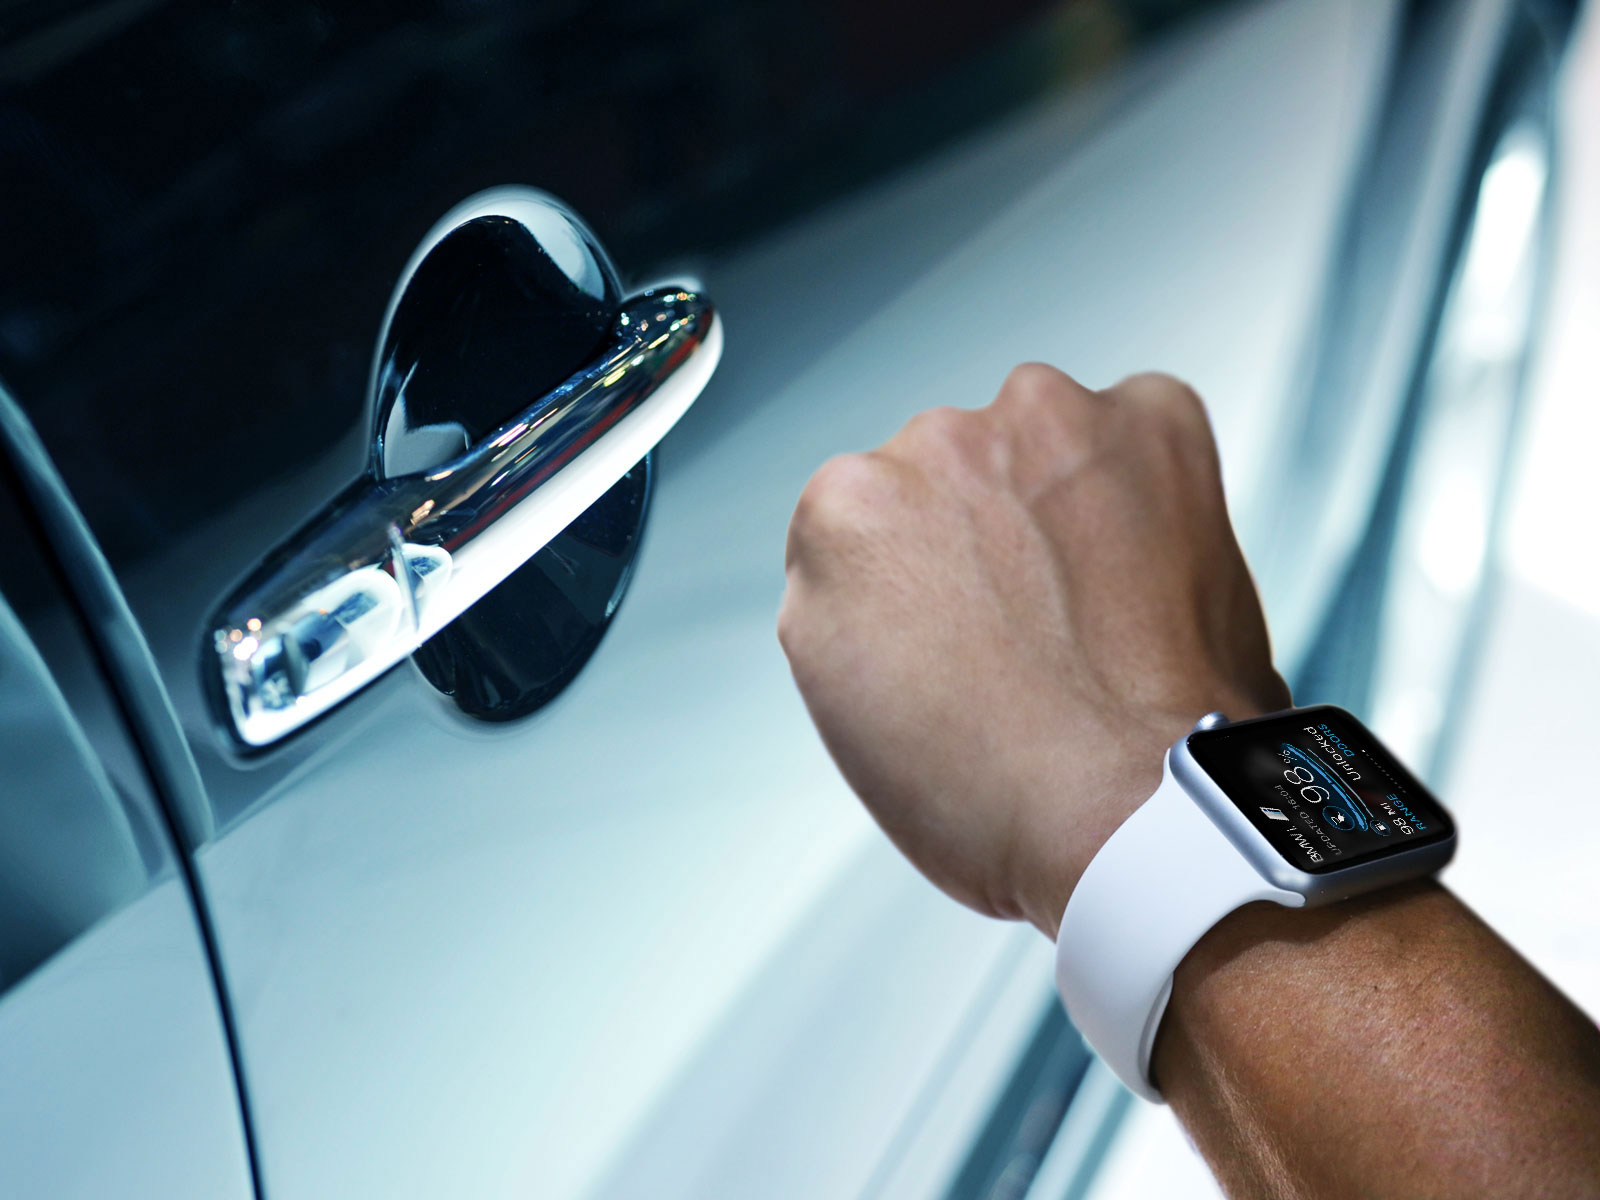 apple-watch-unlock-bmw-1